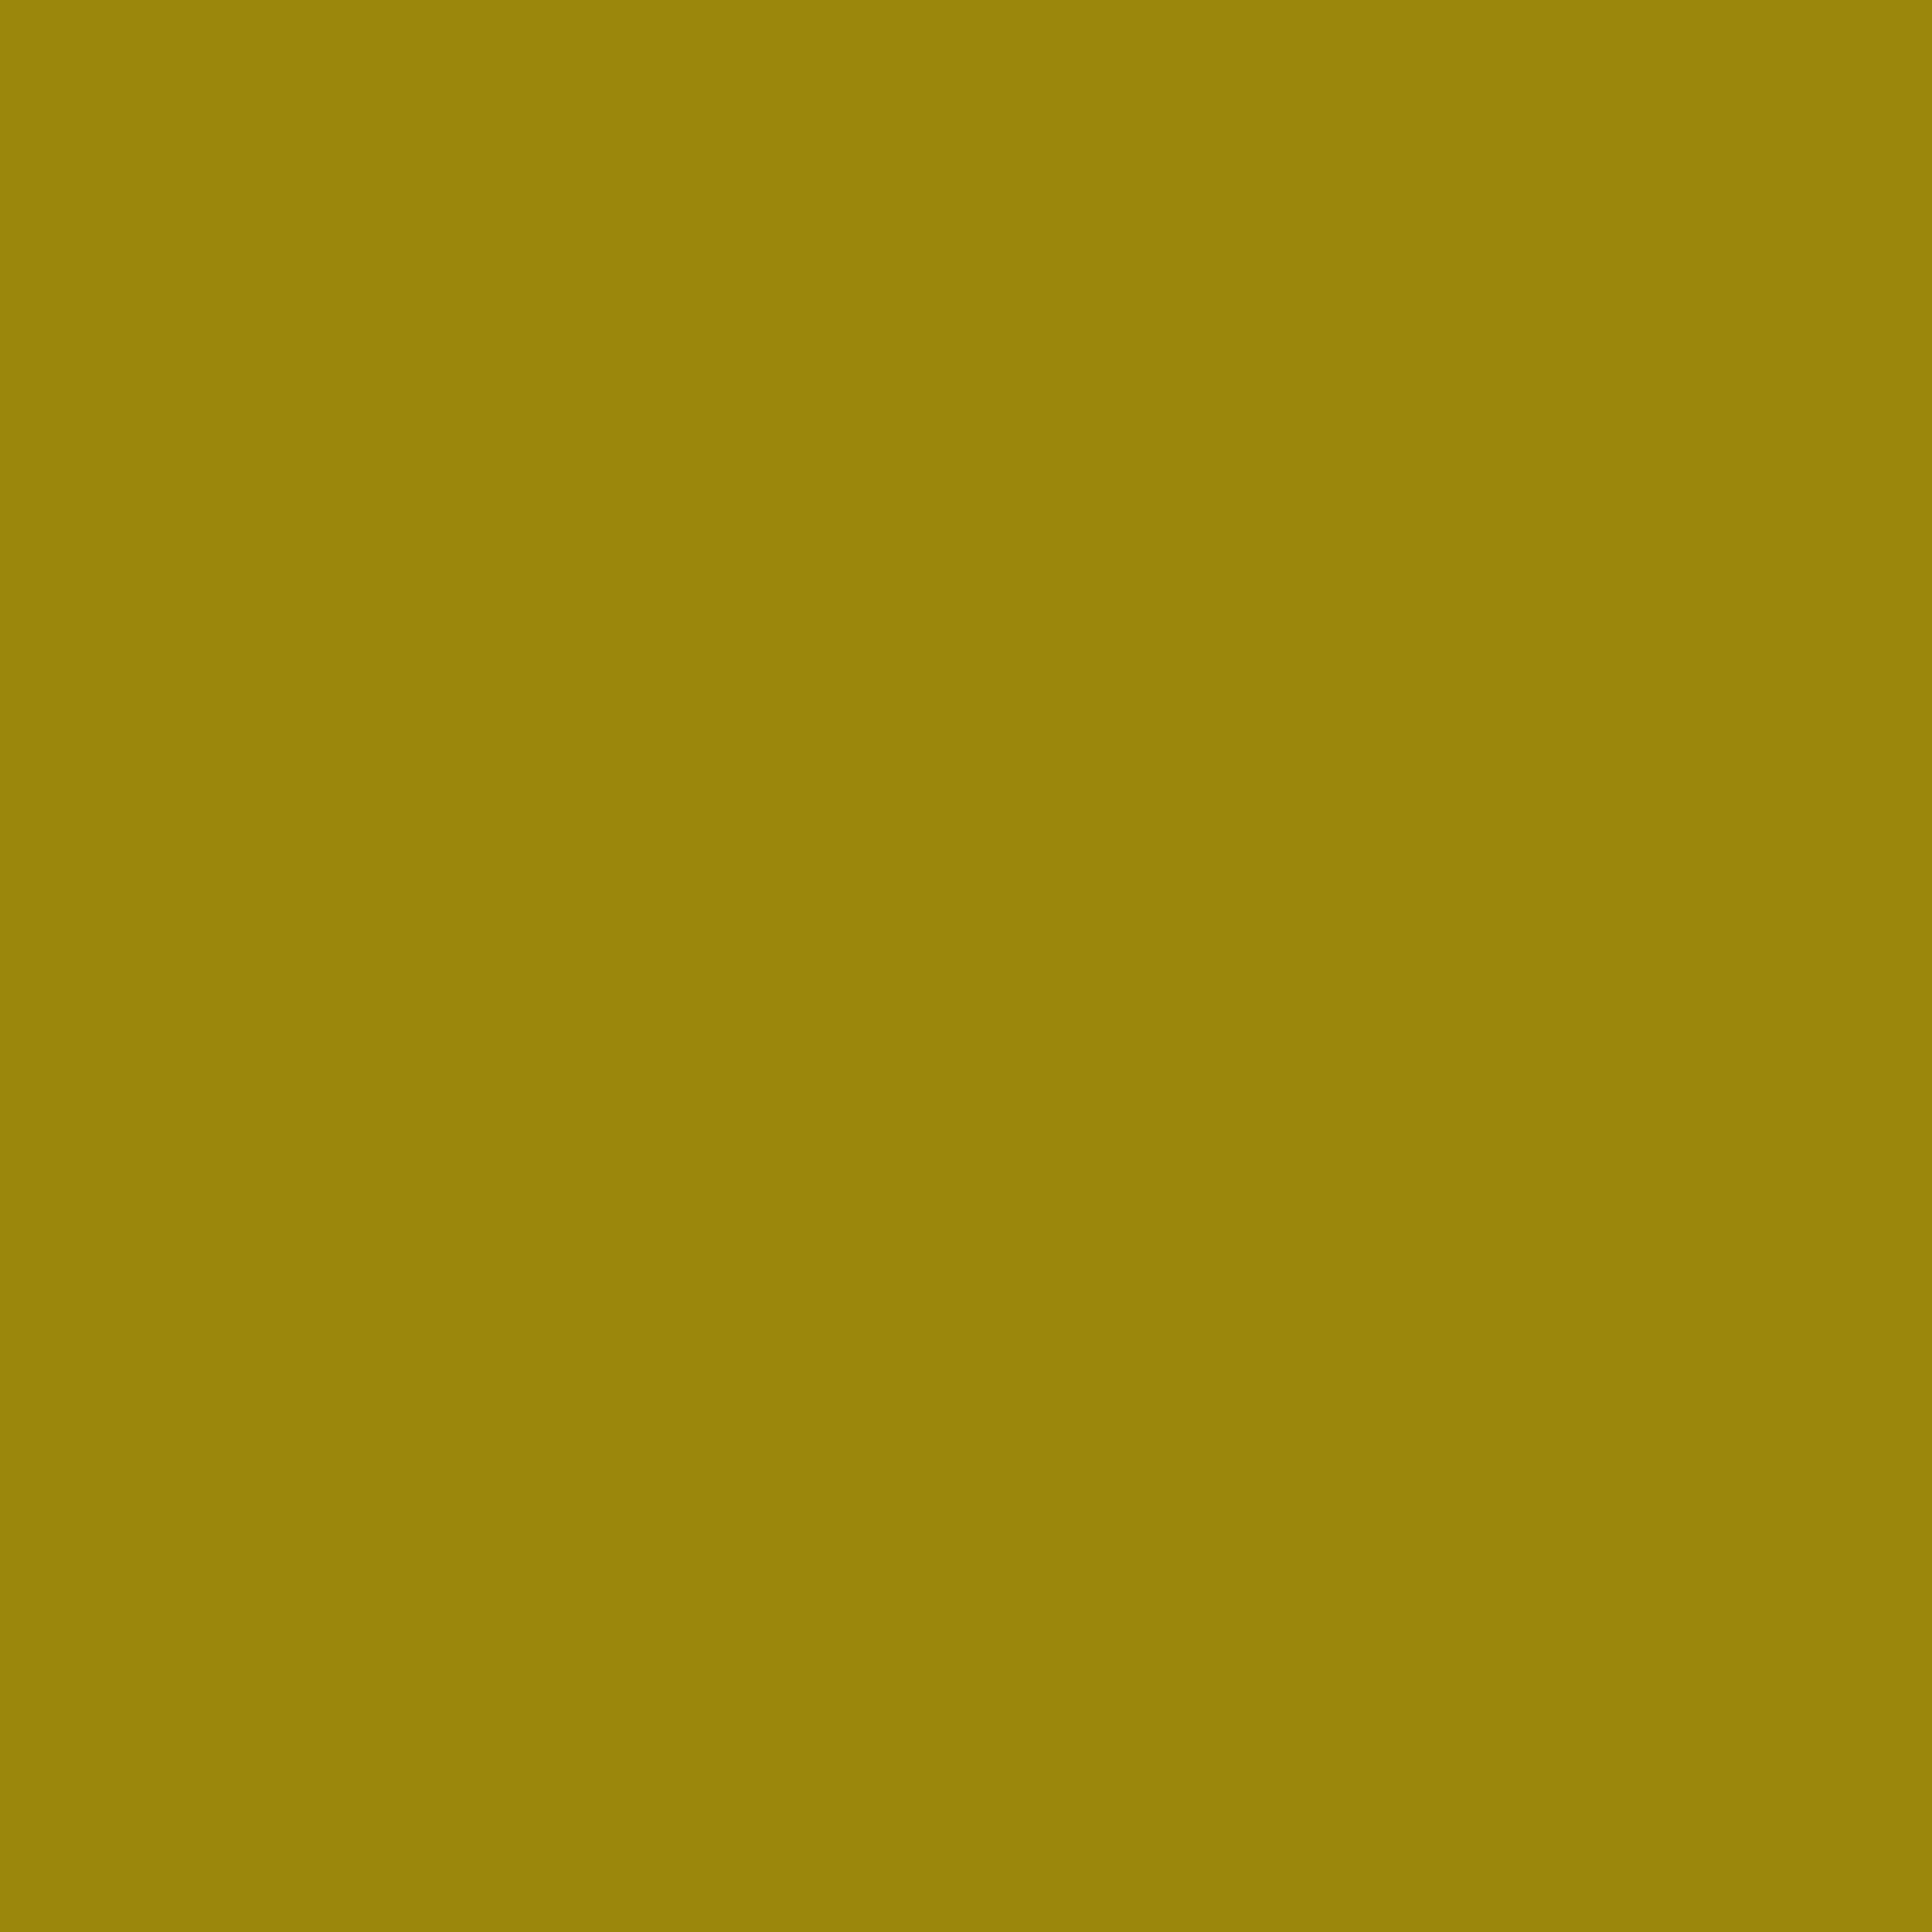 3600x3600 Dark Yellow Solid Color Background